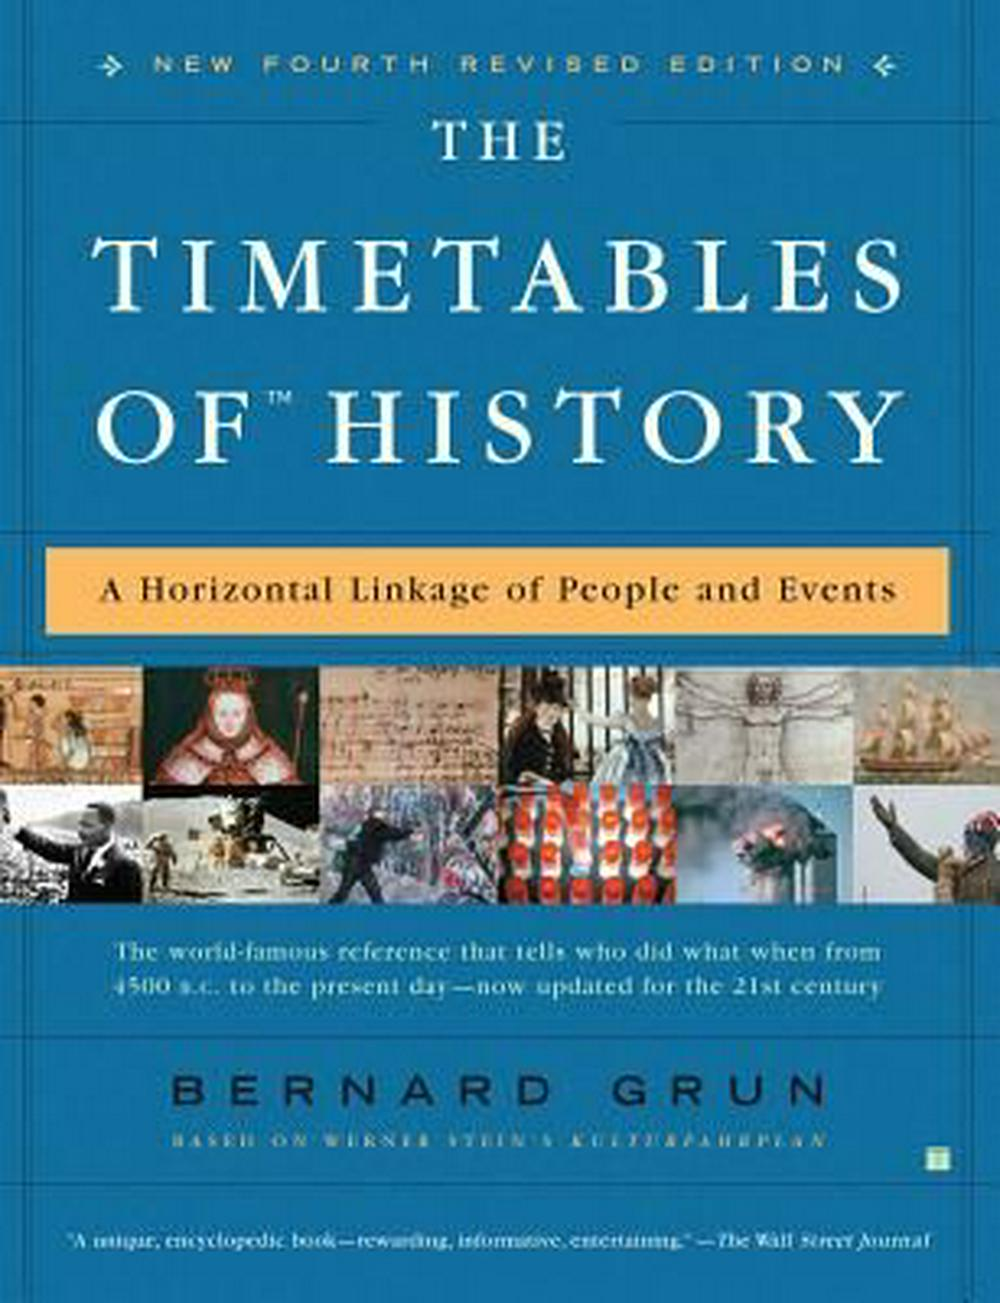 The Timetables of History